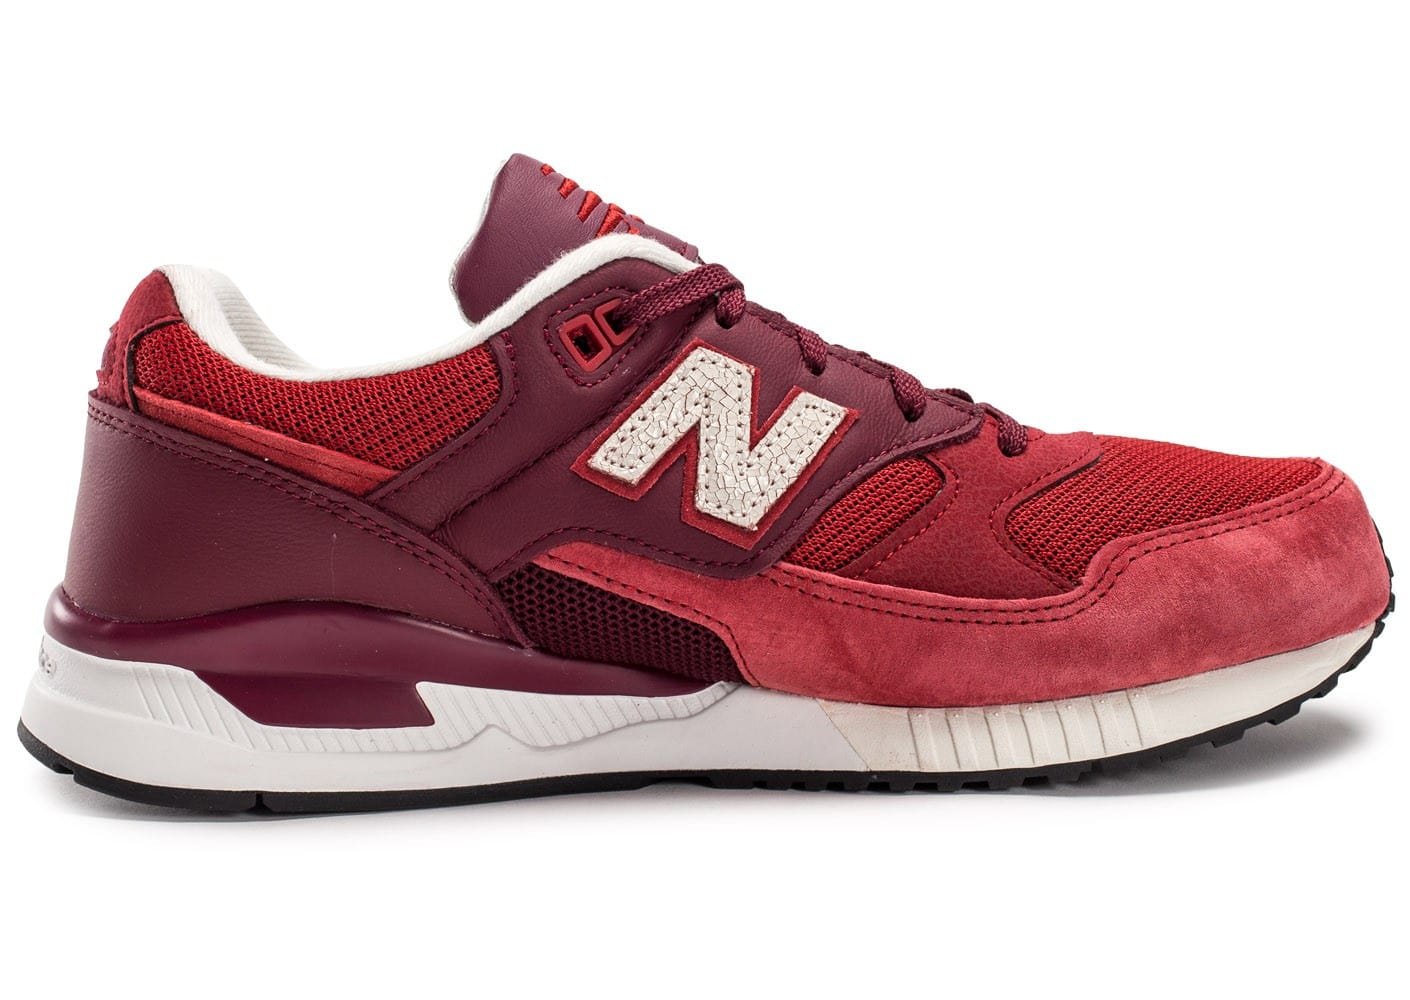 New Balance M530 Oxidation B rouge bordeaux Chaussures